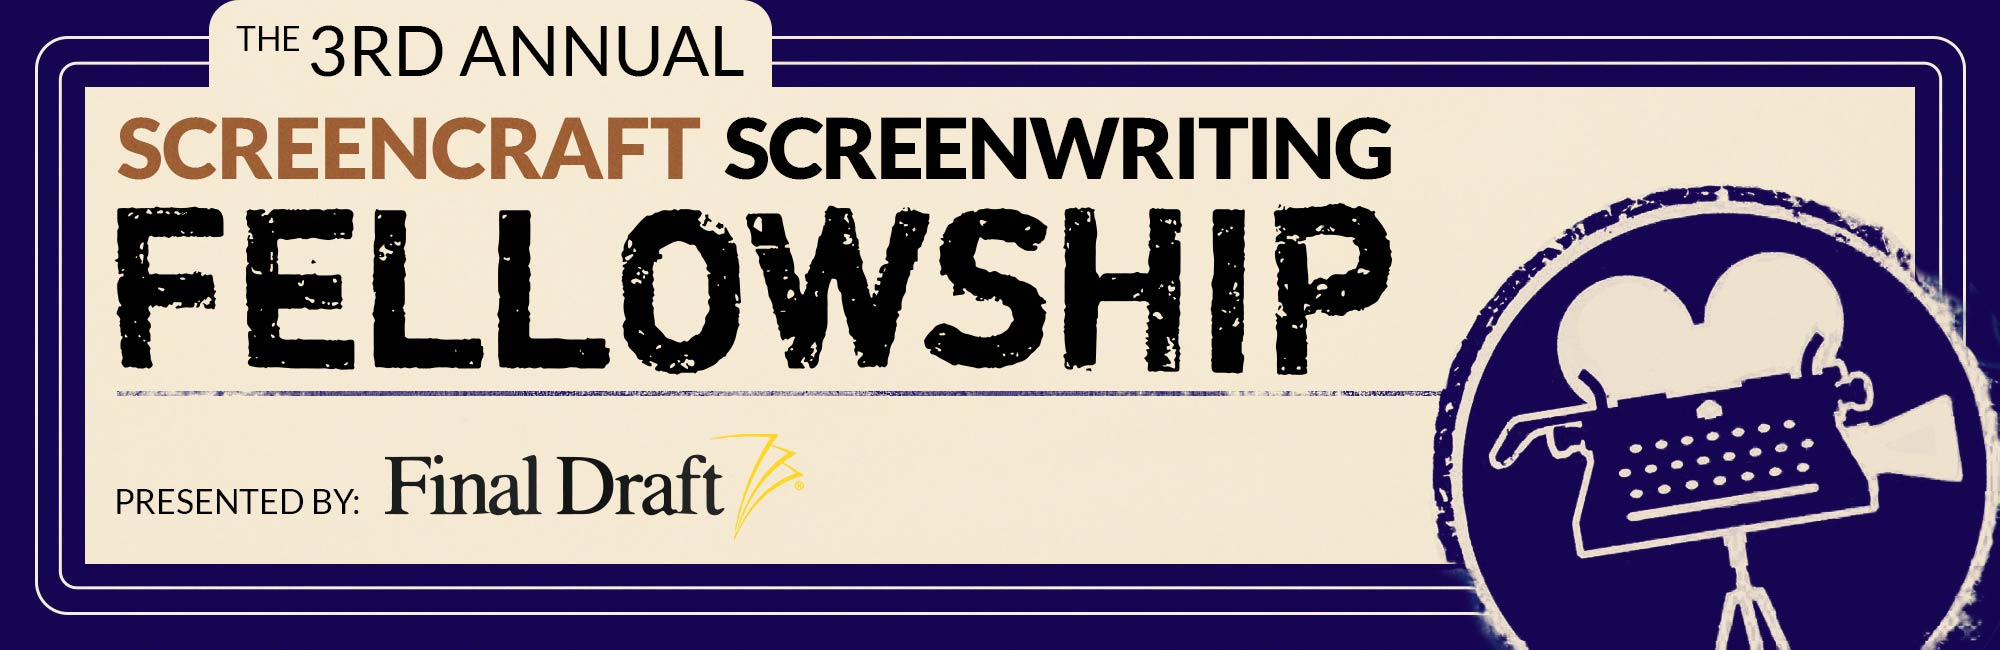 Screen Craft-fellowship-3rd-2000x650.jpg